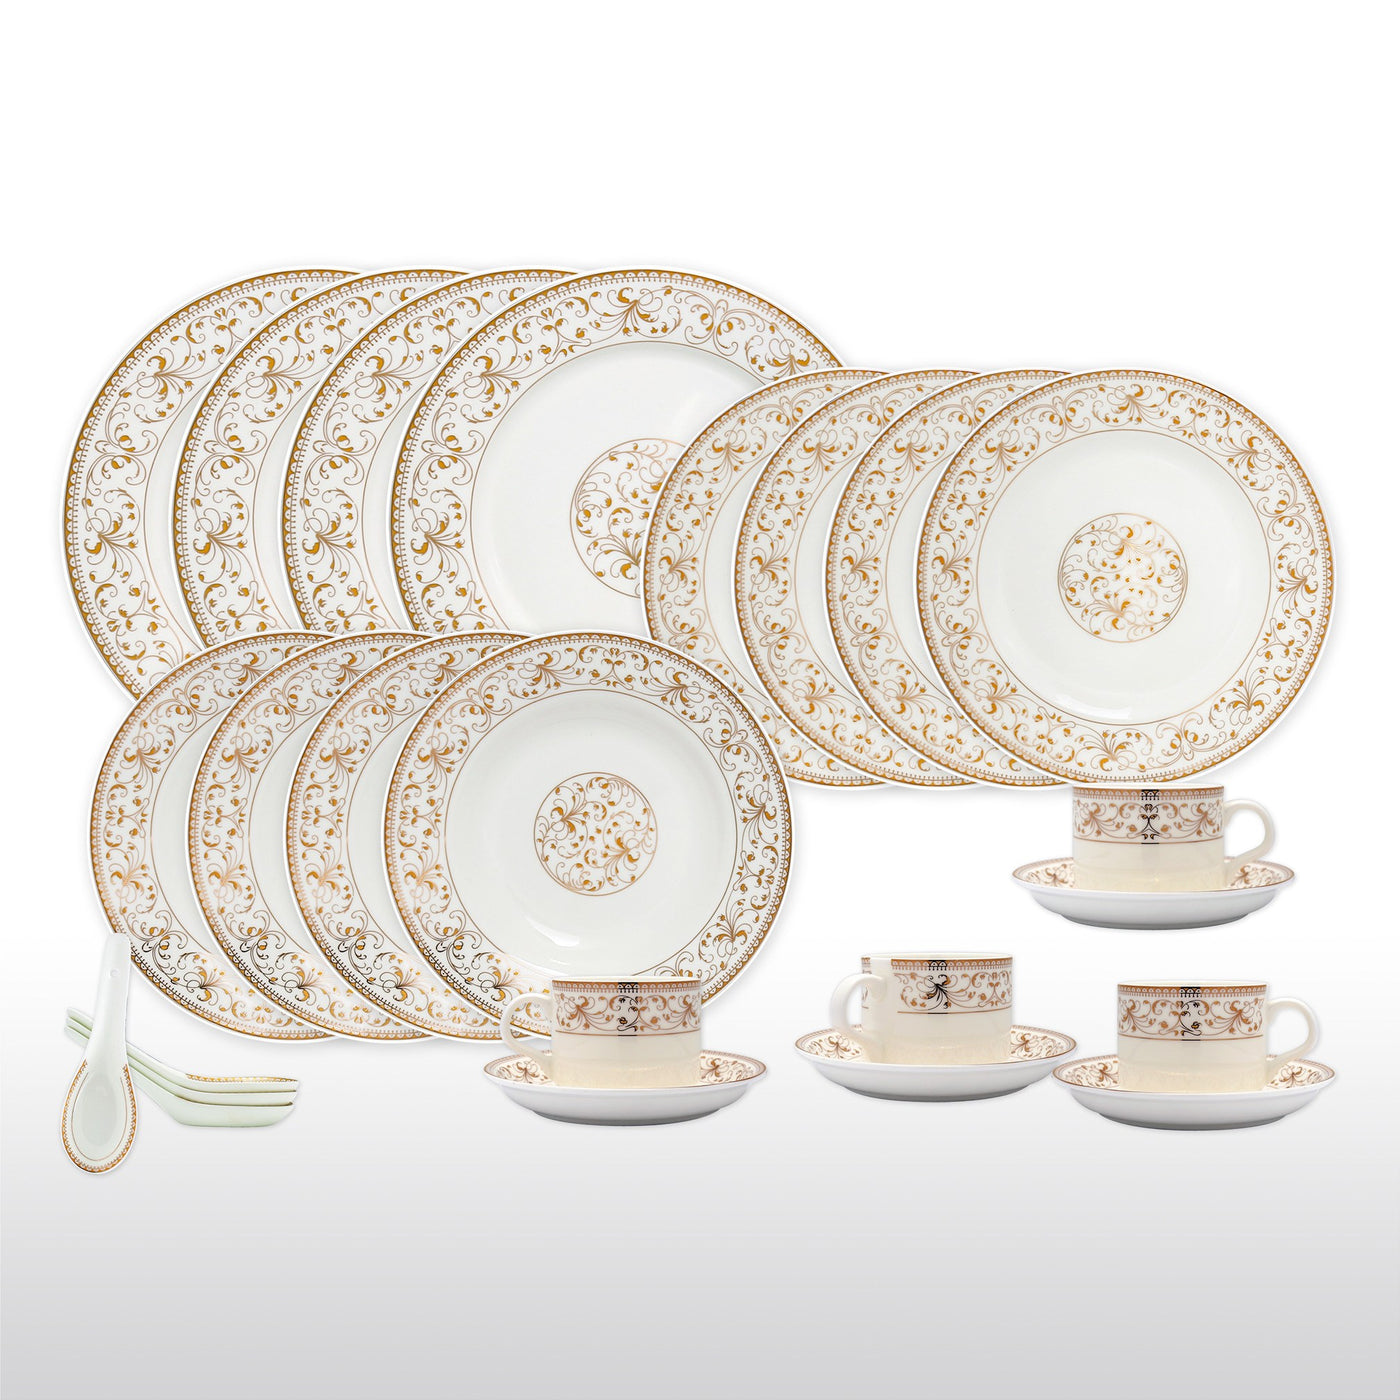 Dinnerwares - Bone China 24 Piece Dinnerware Set Yellow Leaves And Gold Twigs Service For ...  sc 1 st  Homenique.net & Fine Bone China Dinnerware Set - 24 Piece Service for 4 - Gold Leaf ...